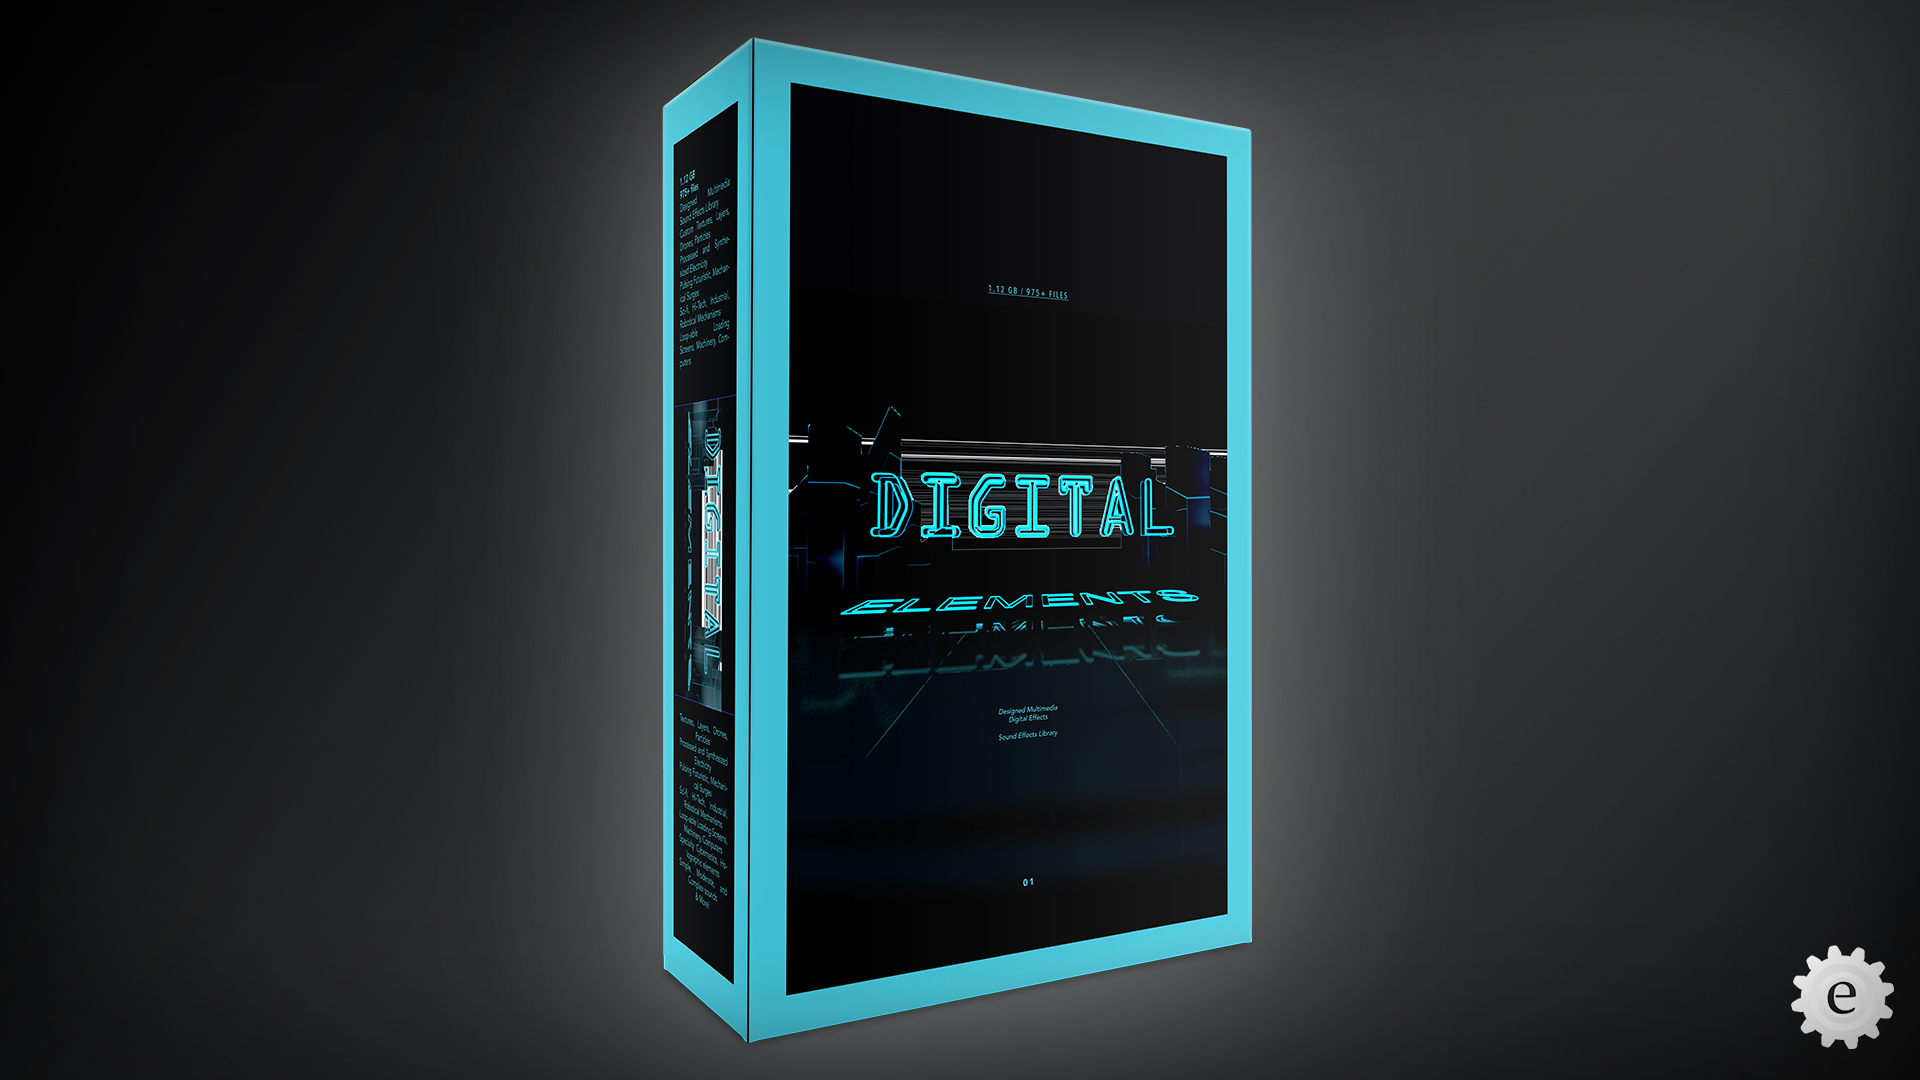 Digital Elements by ESM